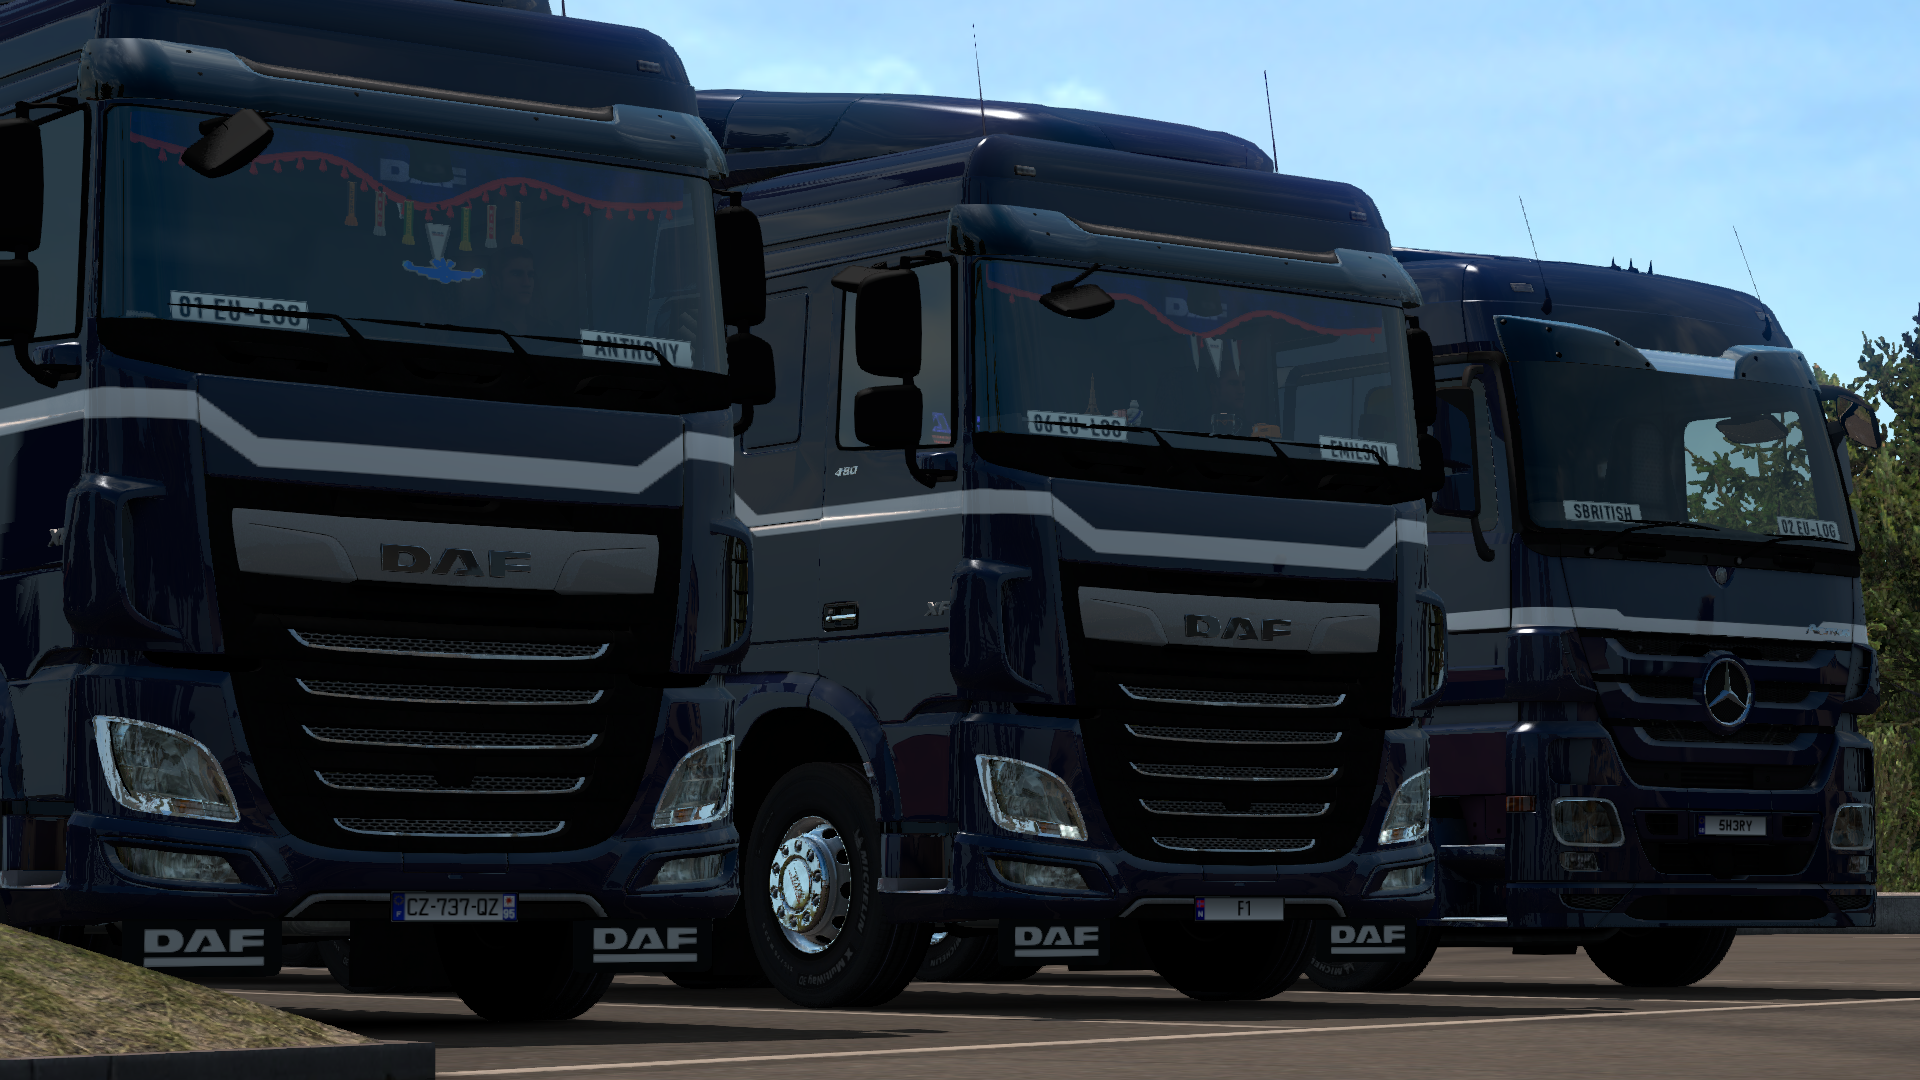 ets2_20181207_183051_00.png